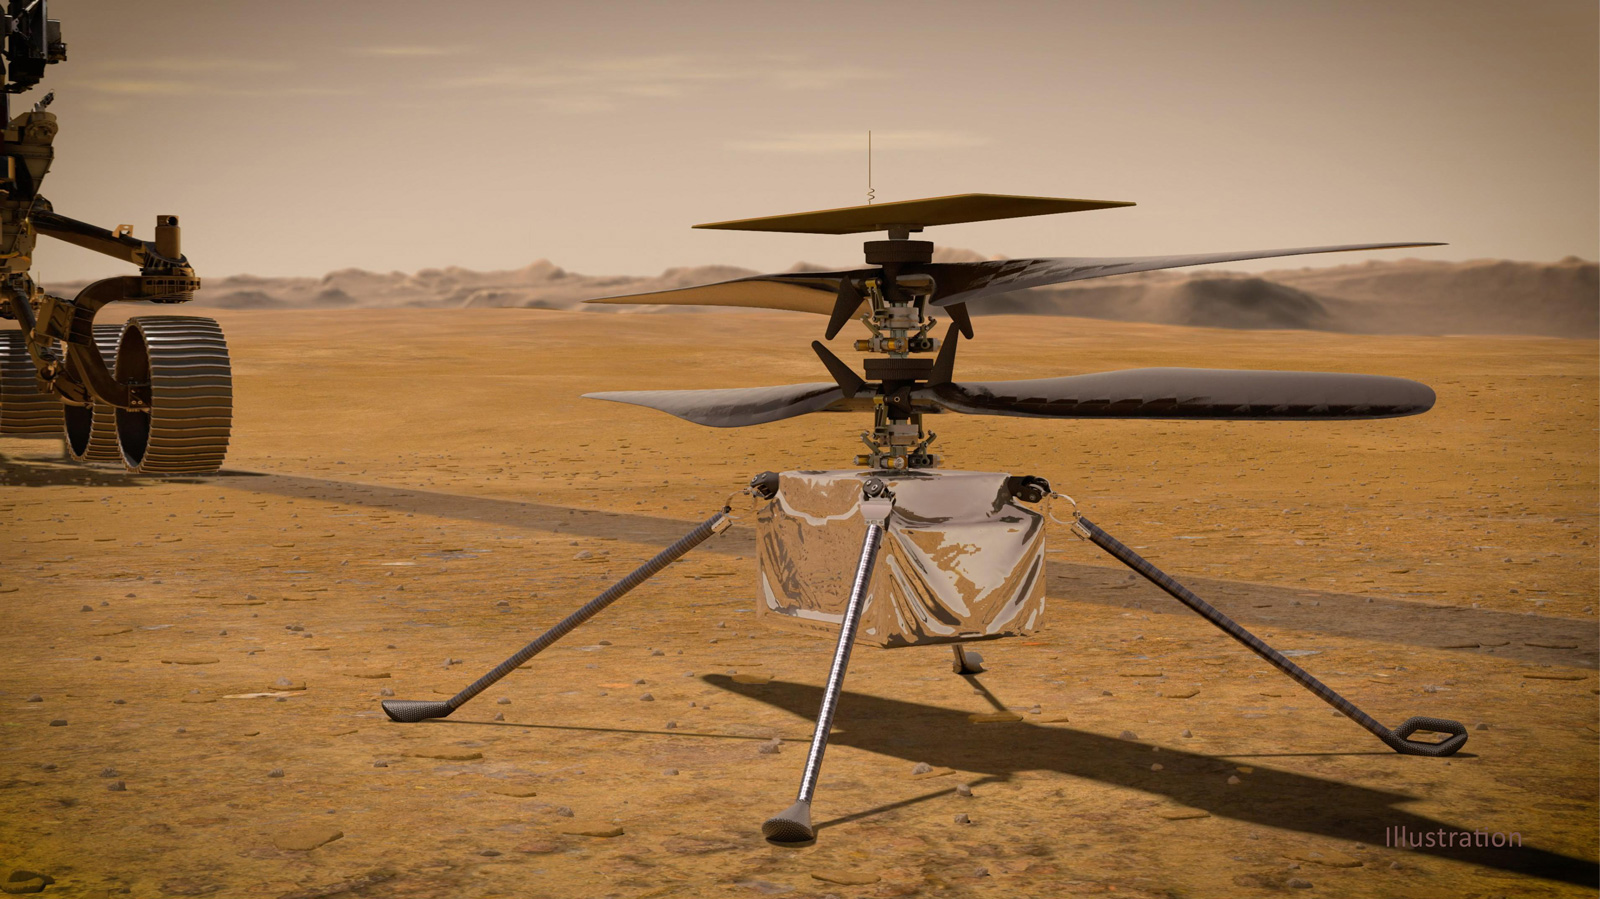 6 Things to Know About NASA's Mars Helicopter on Its Way to Mars